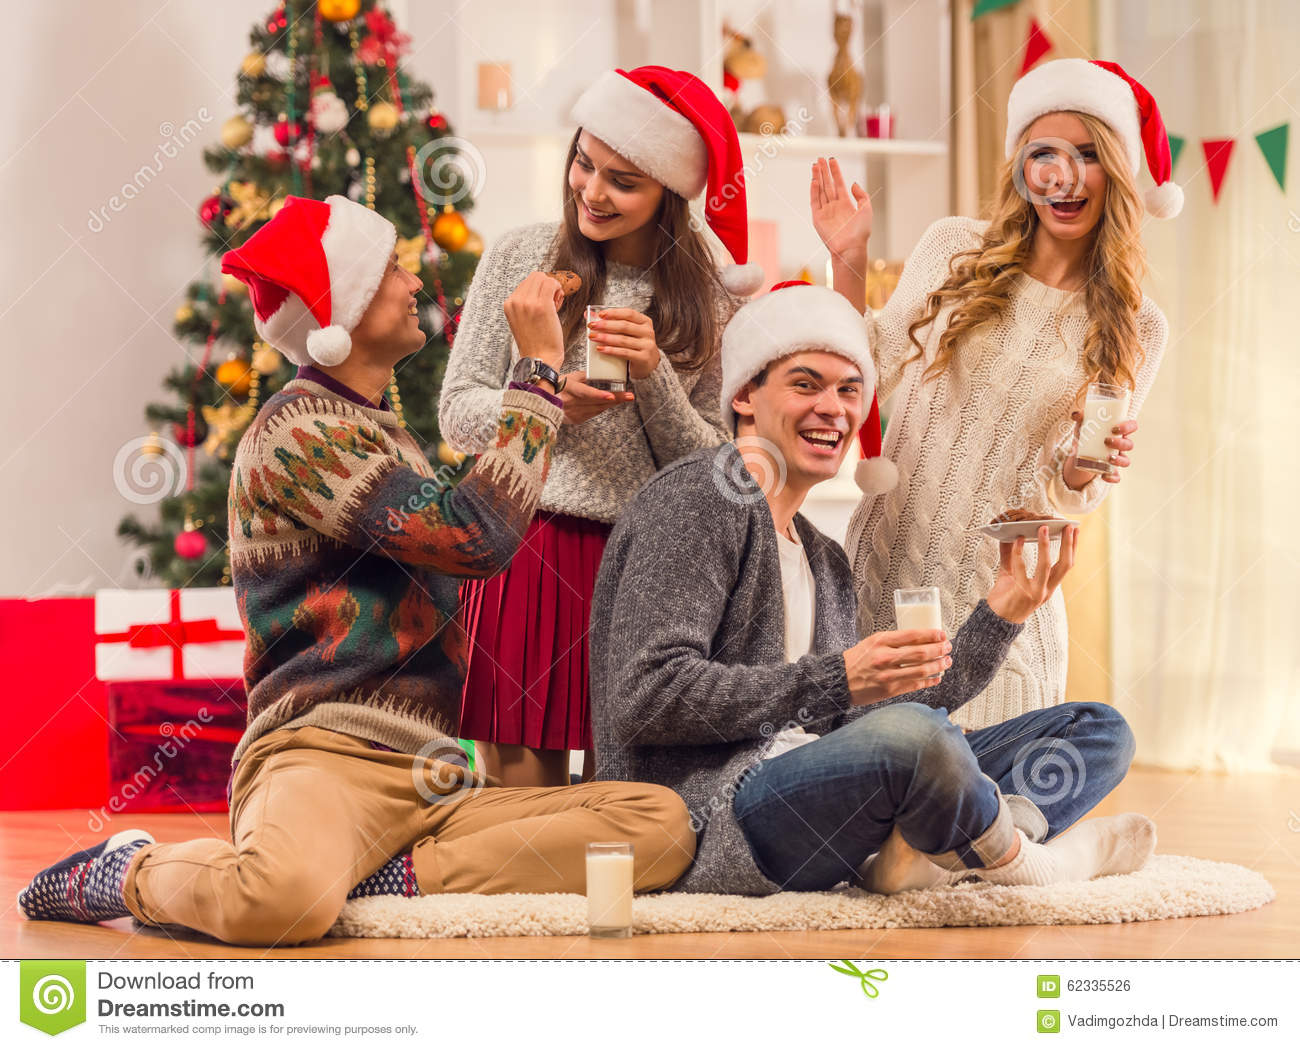 download merry christmas celebration stock photo image of credit party 62335526 - Celebrating Christmas